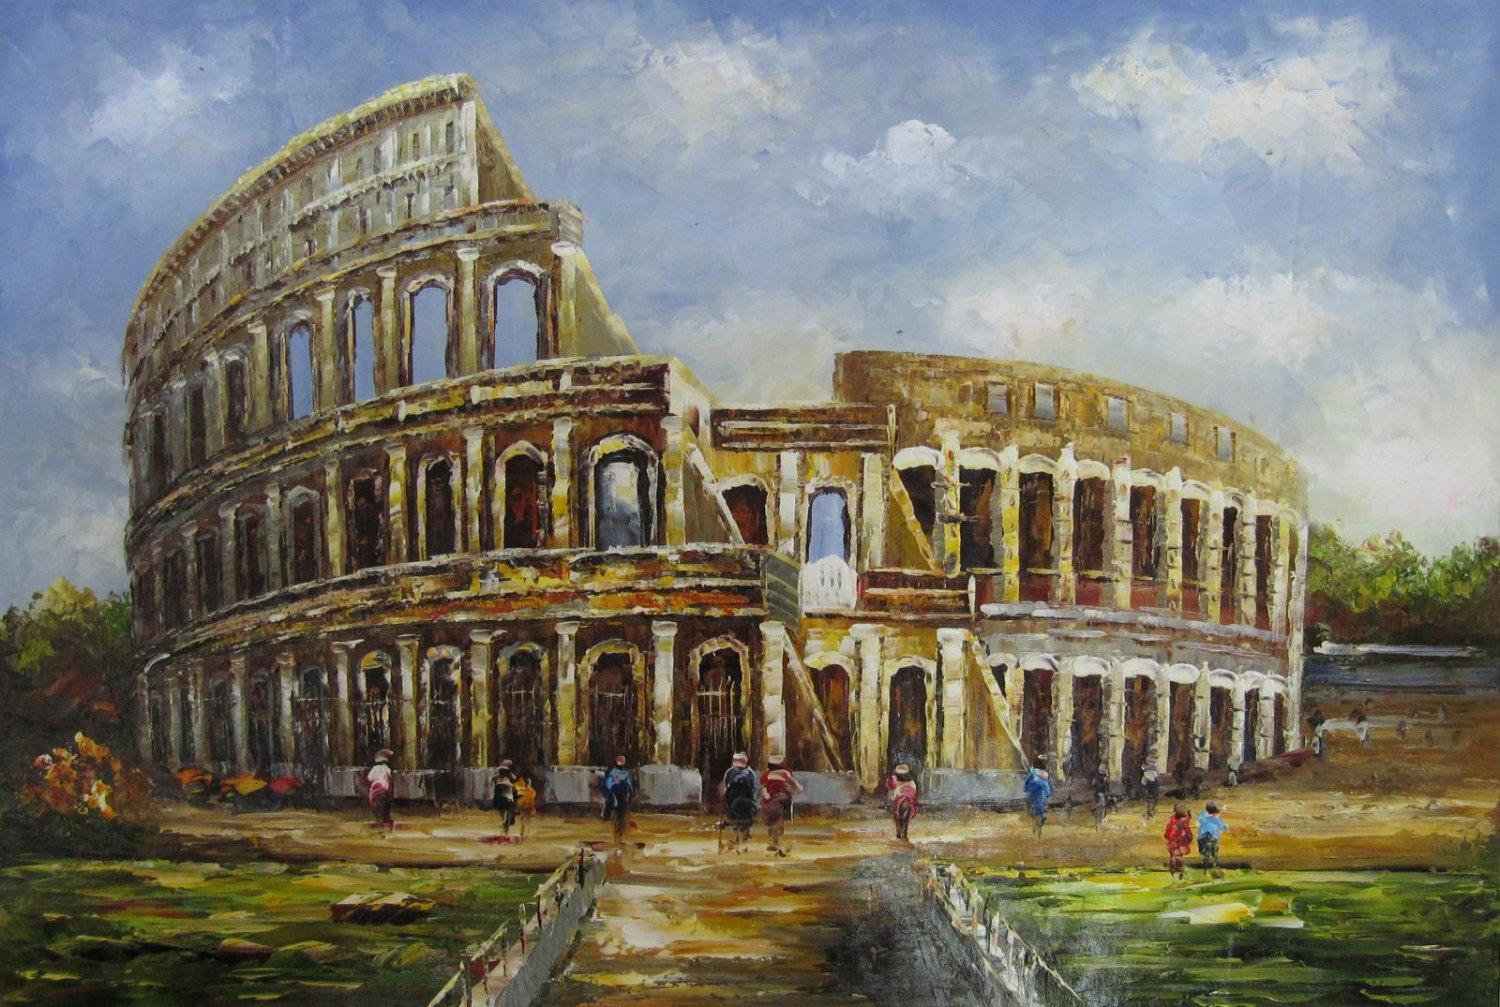 Colosseum 24x36 in. stretched Oil Painting Canvas Art Wall Decor modern001